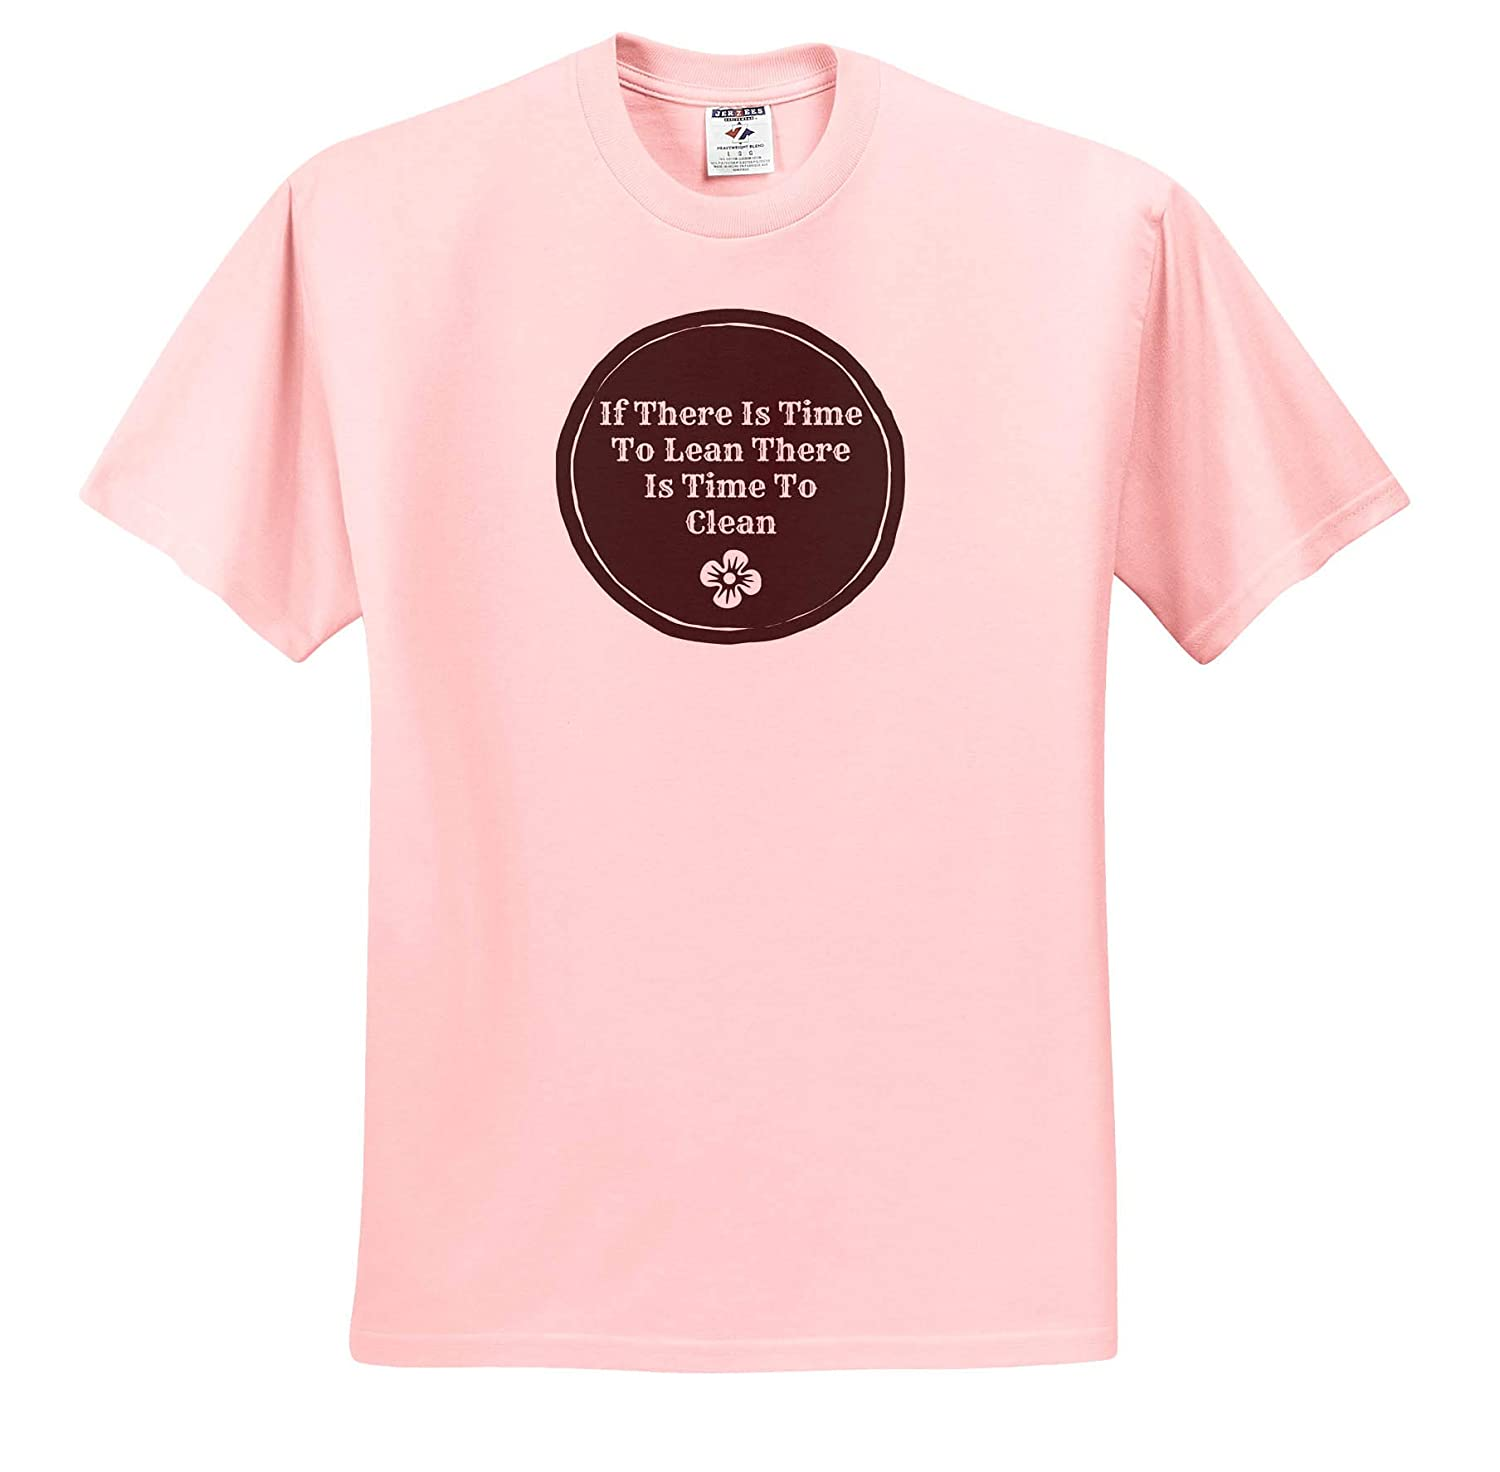 T-Shirts Image of If There is Time to Lean There is Time to Clean 3dRose Carrie Merchant Quote